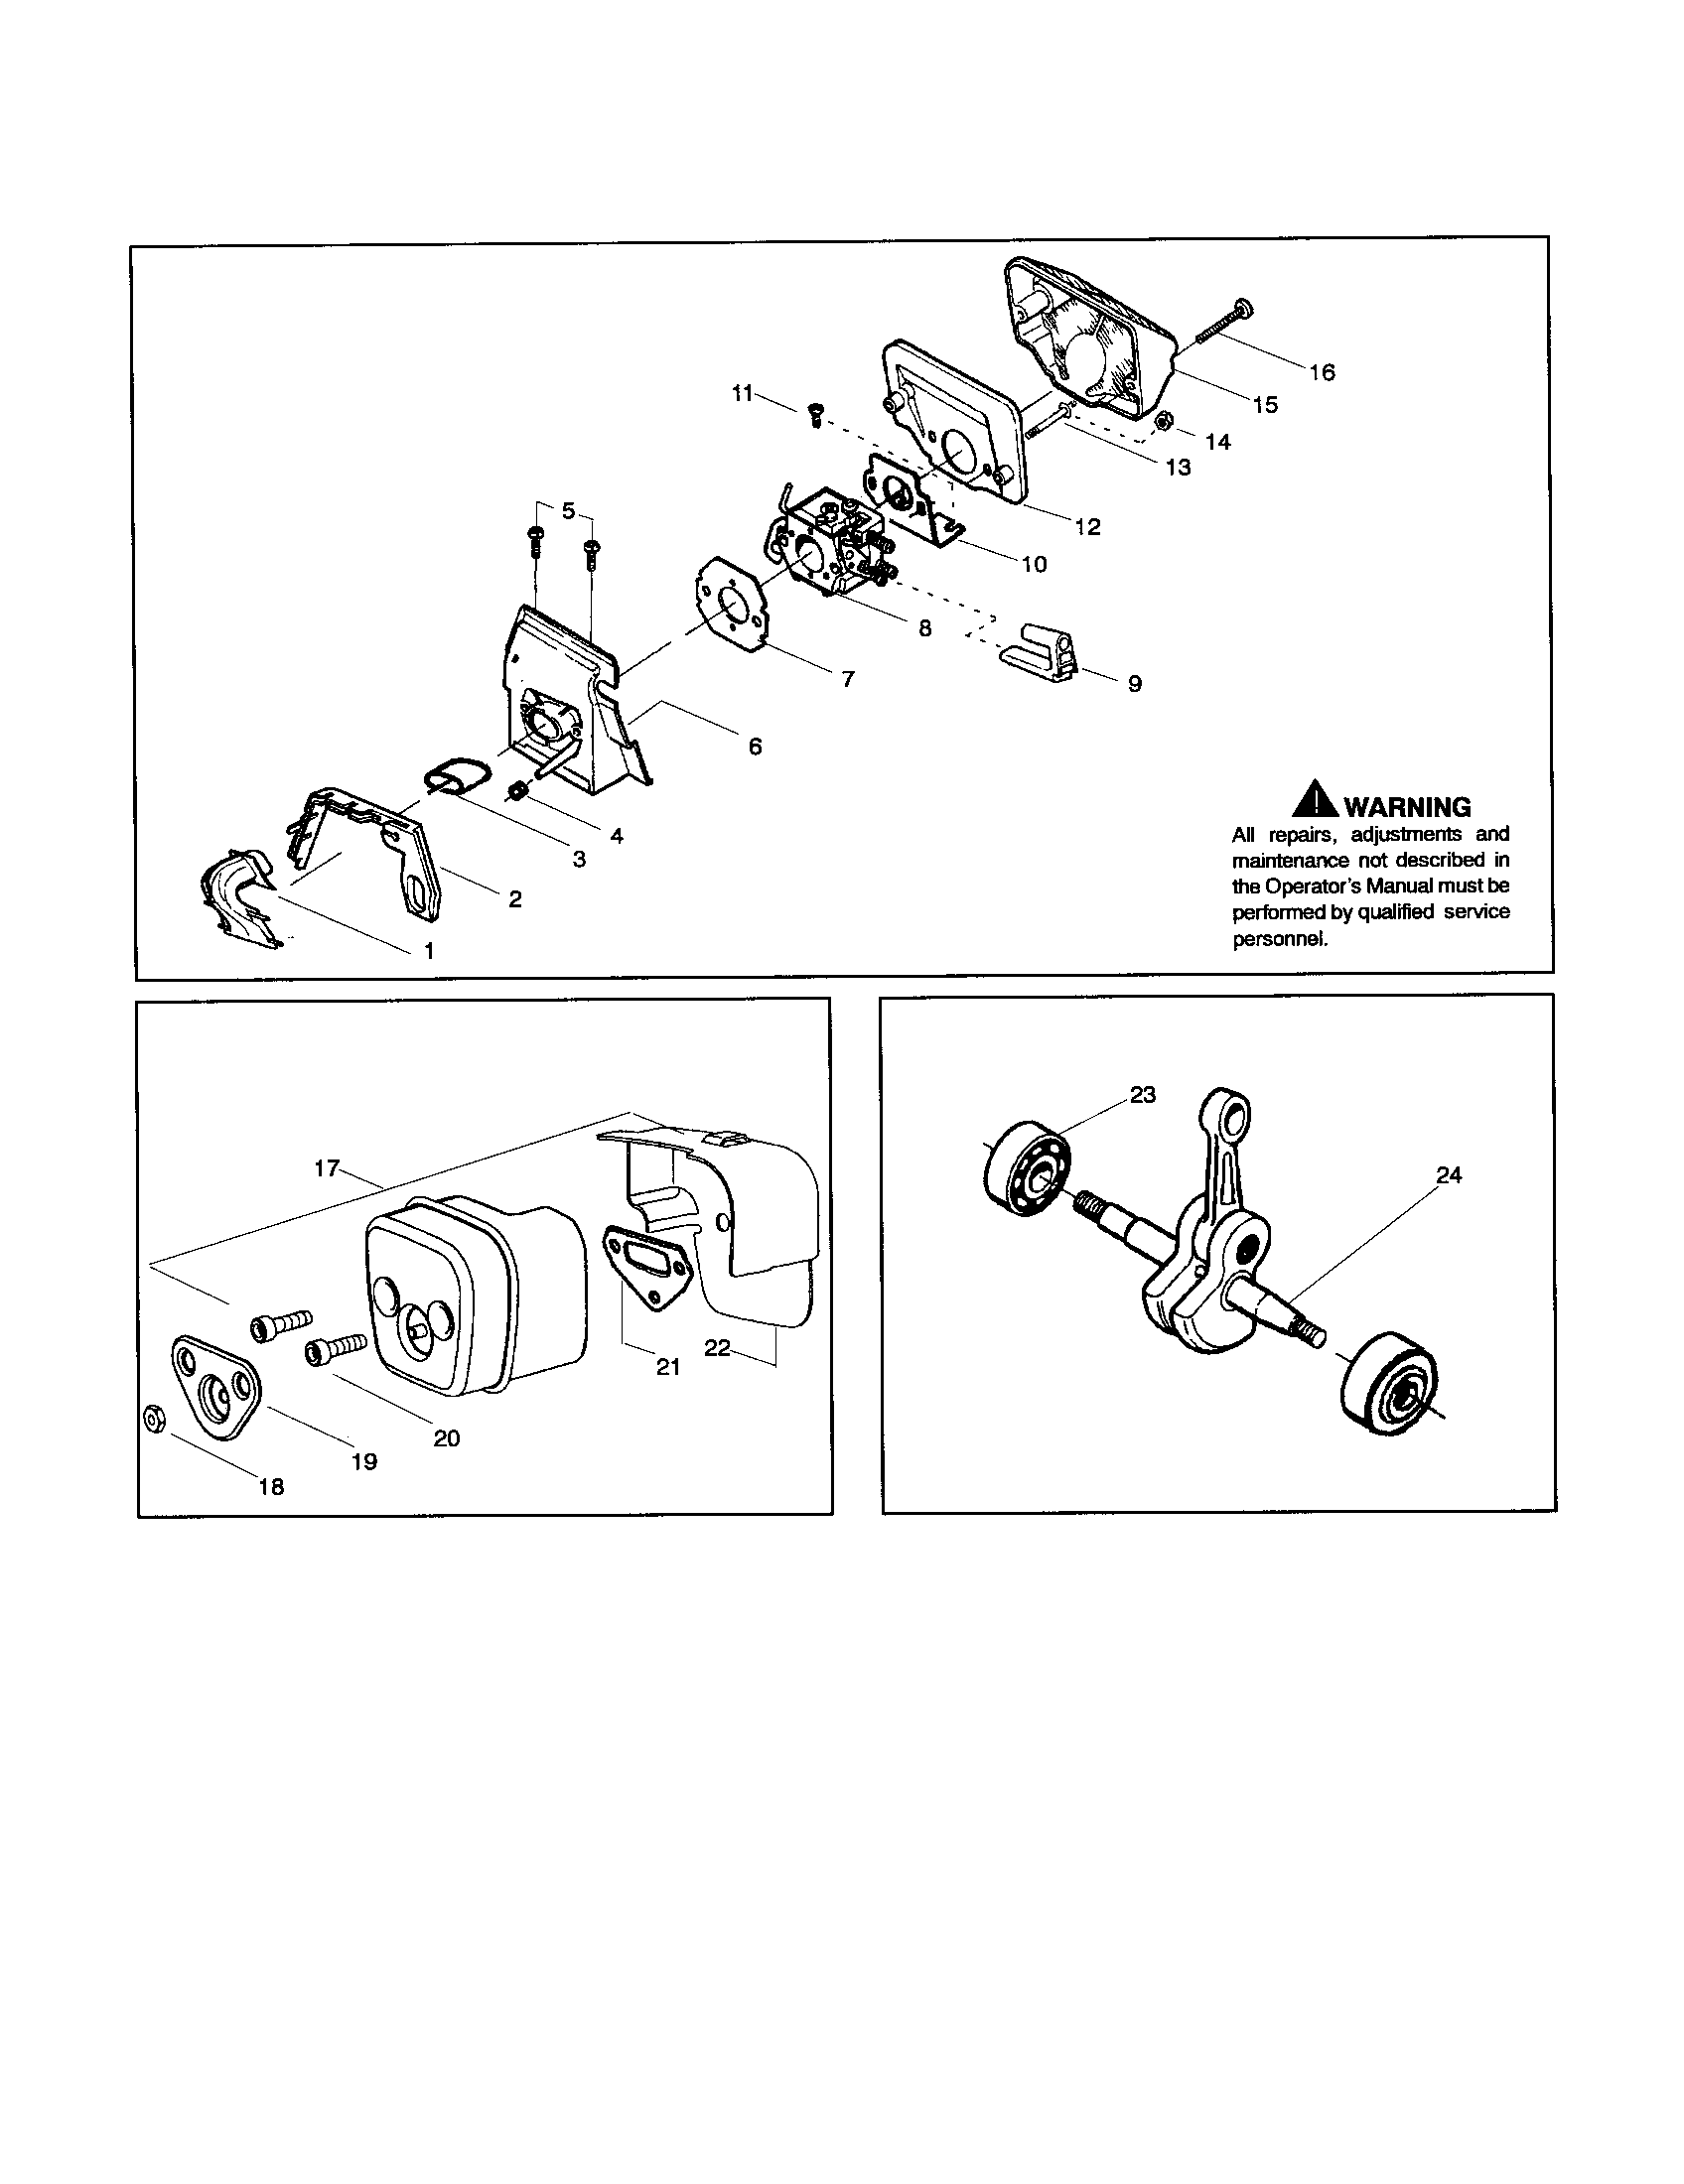 Husqvarna 440 Chainsaw Parts Manual